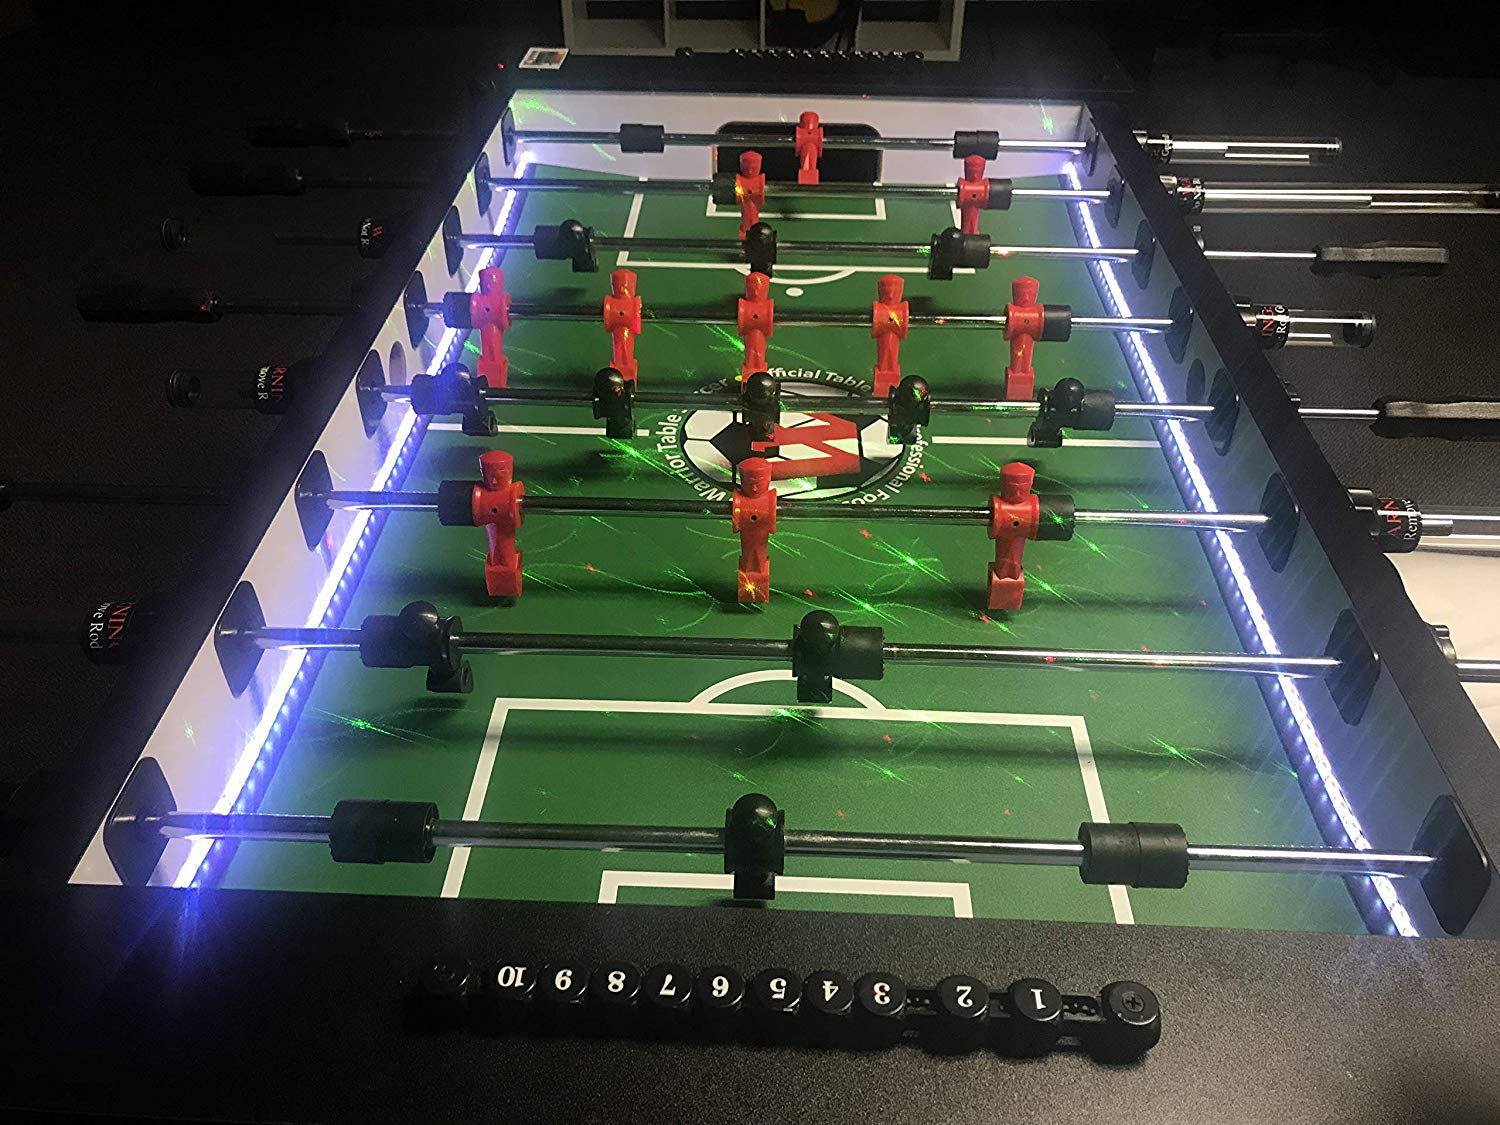 Warrior 8-person pro LED foosball table